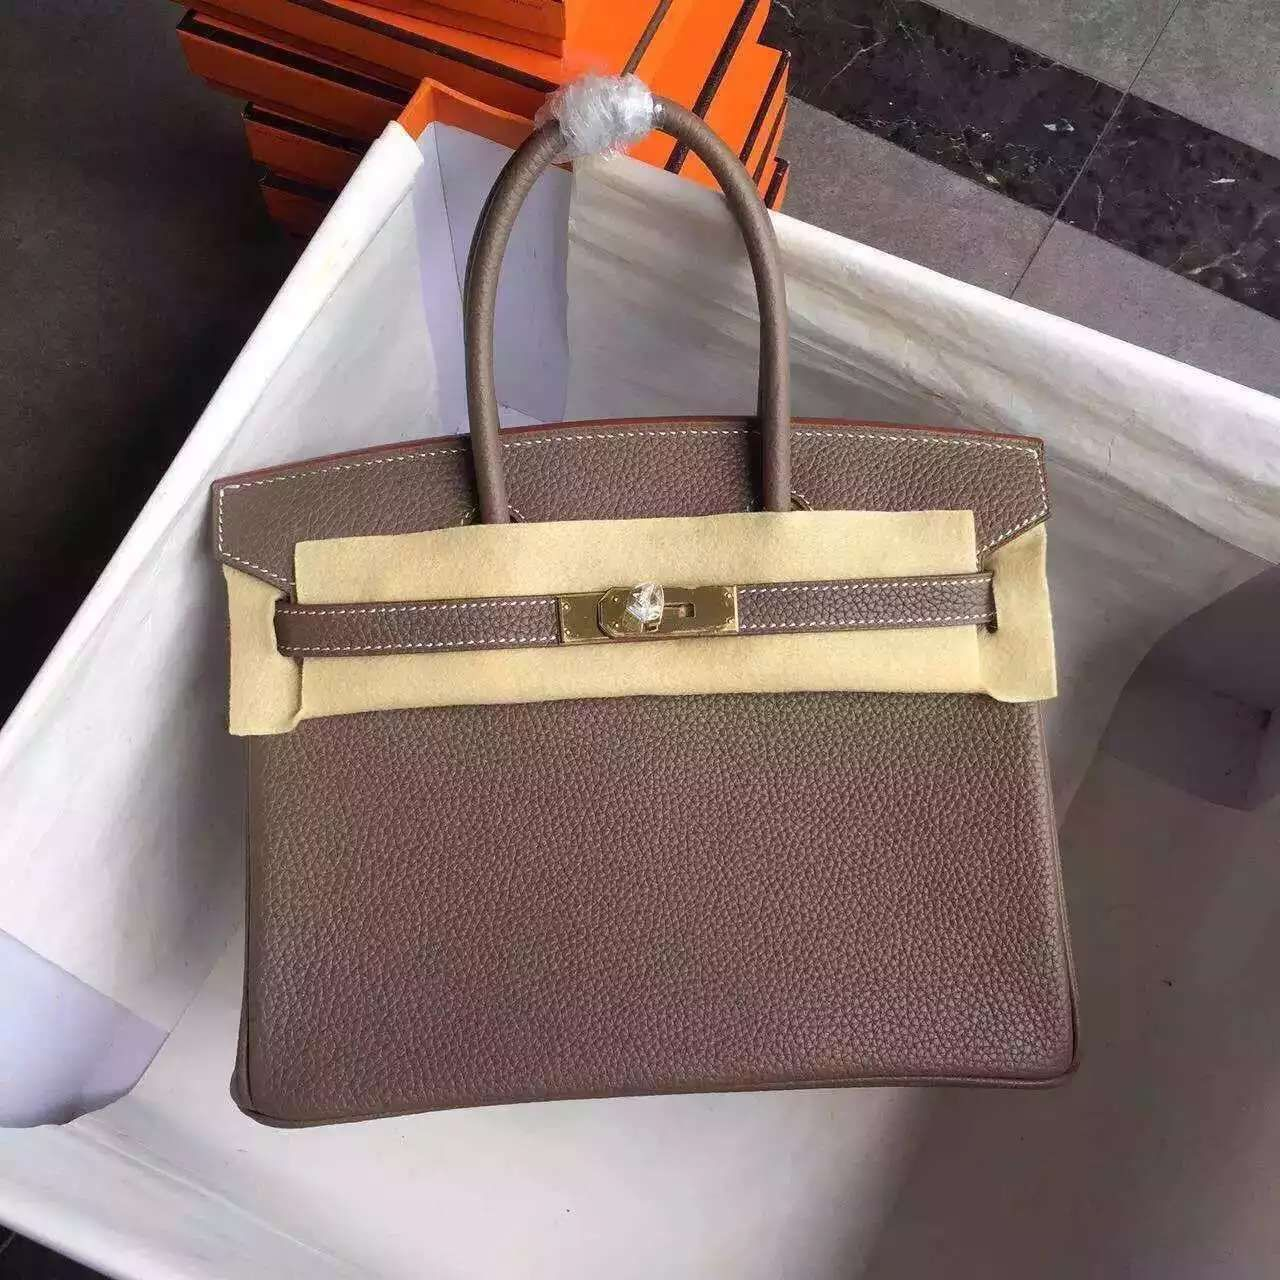 hermès Bag, ID : 43575(FORSALE:a@yybags.com), hermes pink leather handbags, hermes evening bags, hermes business briefcase, hermes organizer handbags, hermes handbag designers, hermes leather satchel, hermes book bags for men, hermes designer handbags on sale, hermes soldes, hermes black leather backpack, hermes travel briefcase #hermèsBag #hermès #hermes #brown #leather #handbags